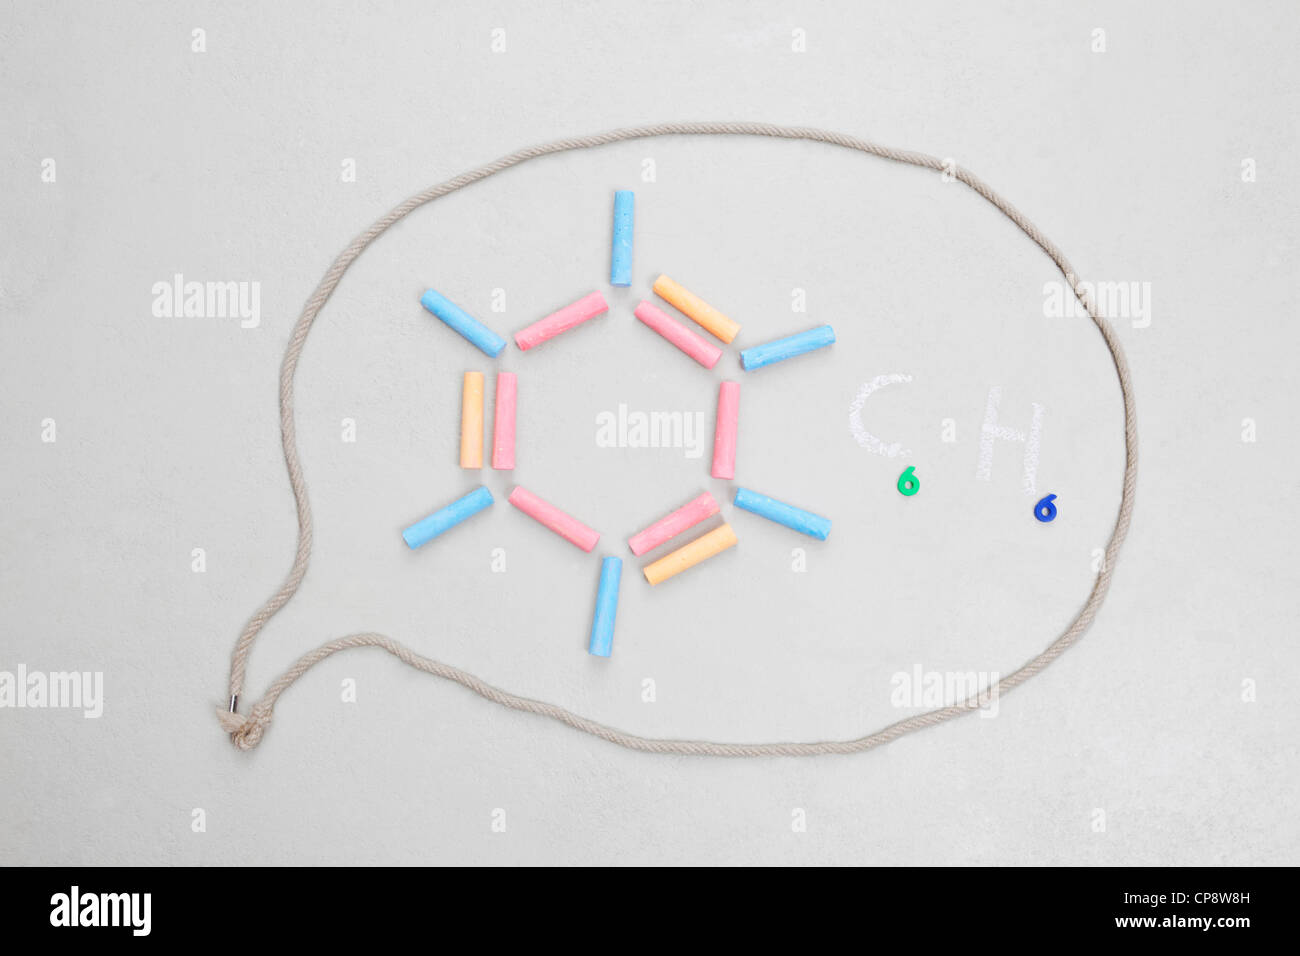 Chemical formula in speech bubble - Stock Image